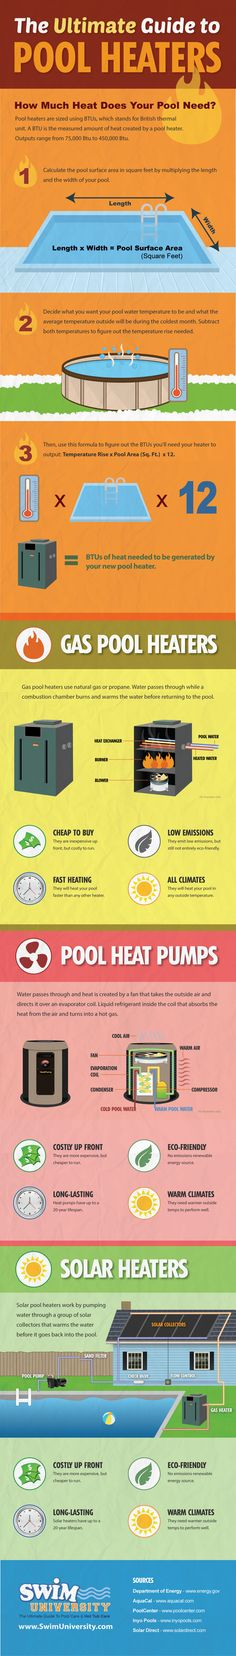 Pool-Heater-Infographic.jpg 1,200×8,424 pixels